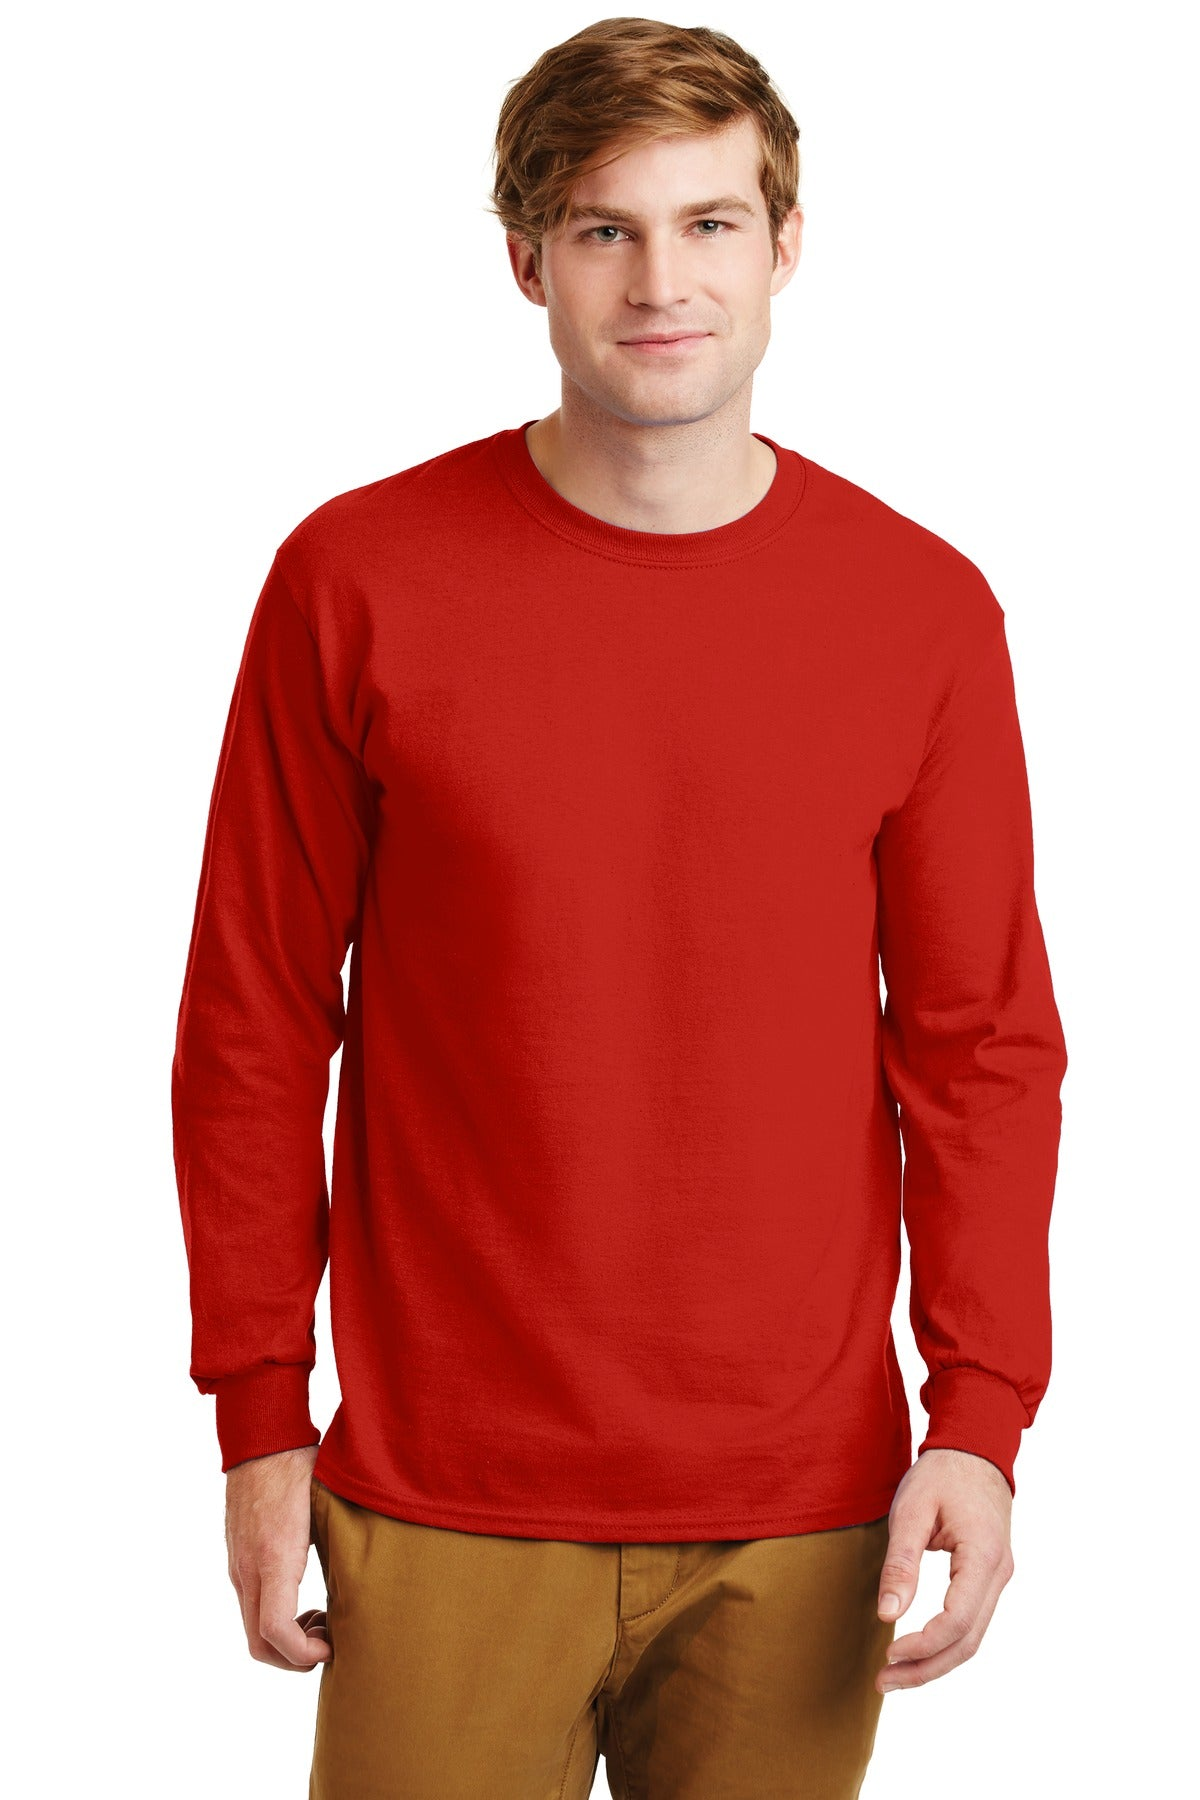 Red Gildan Ultra Cotton 100% Cotton Long Sleeve T-Shirt.